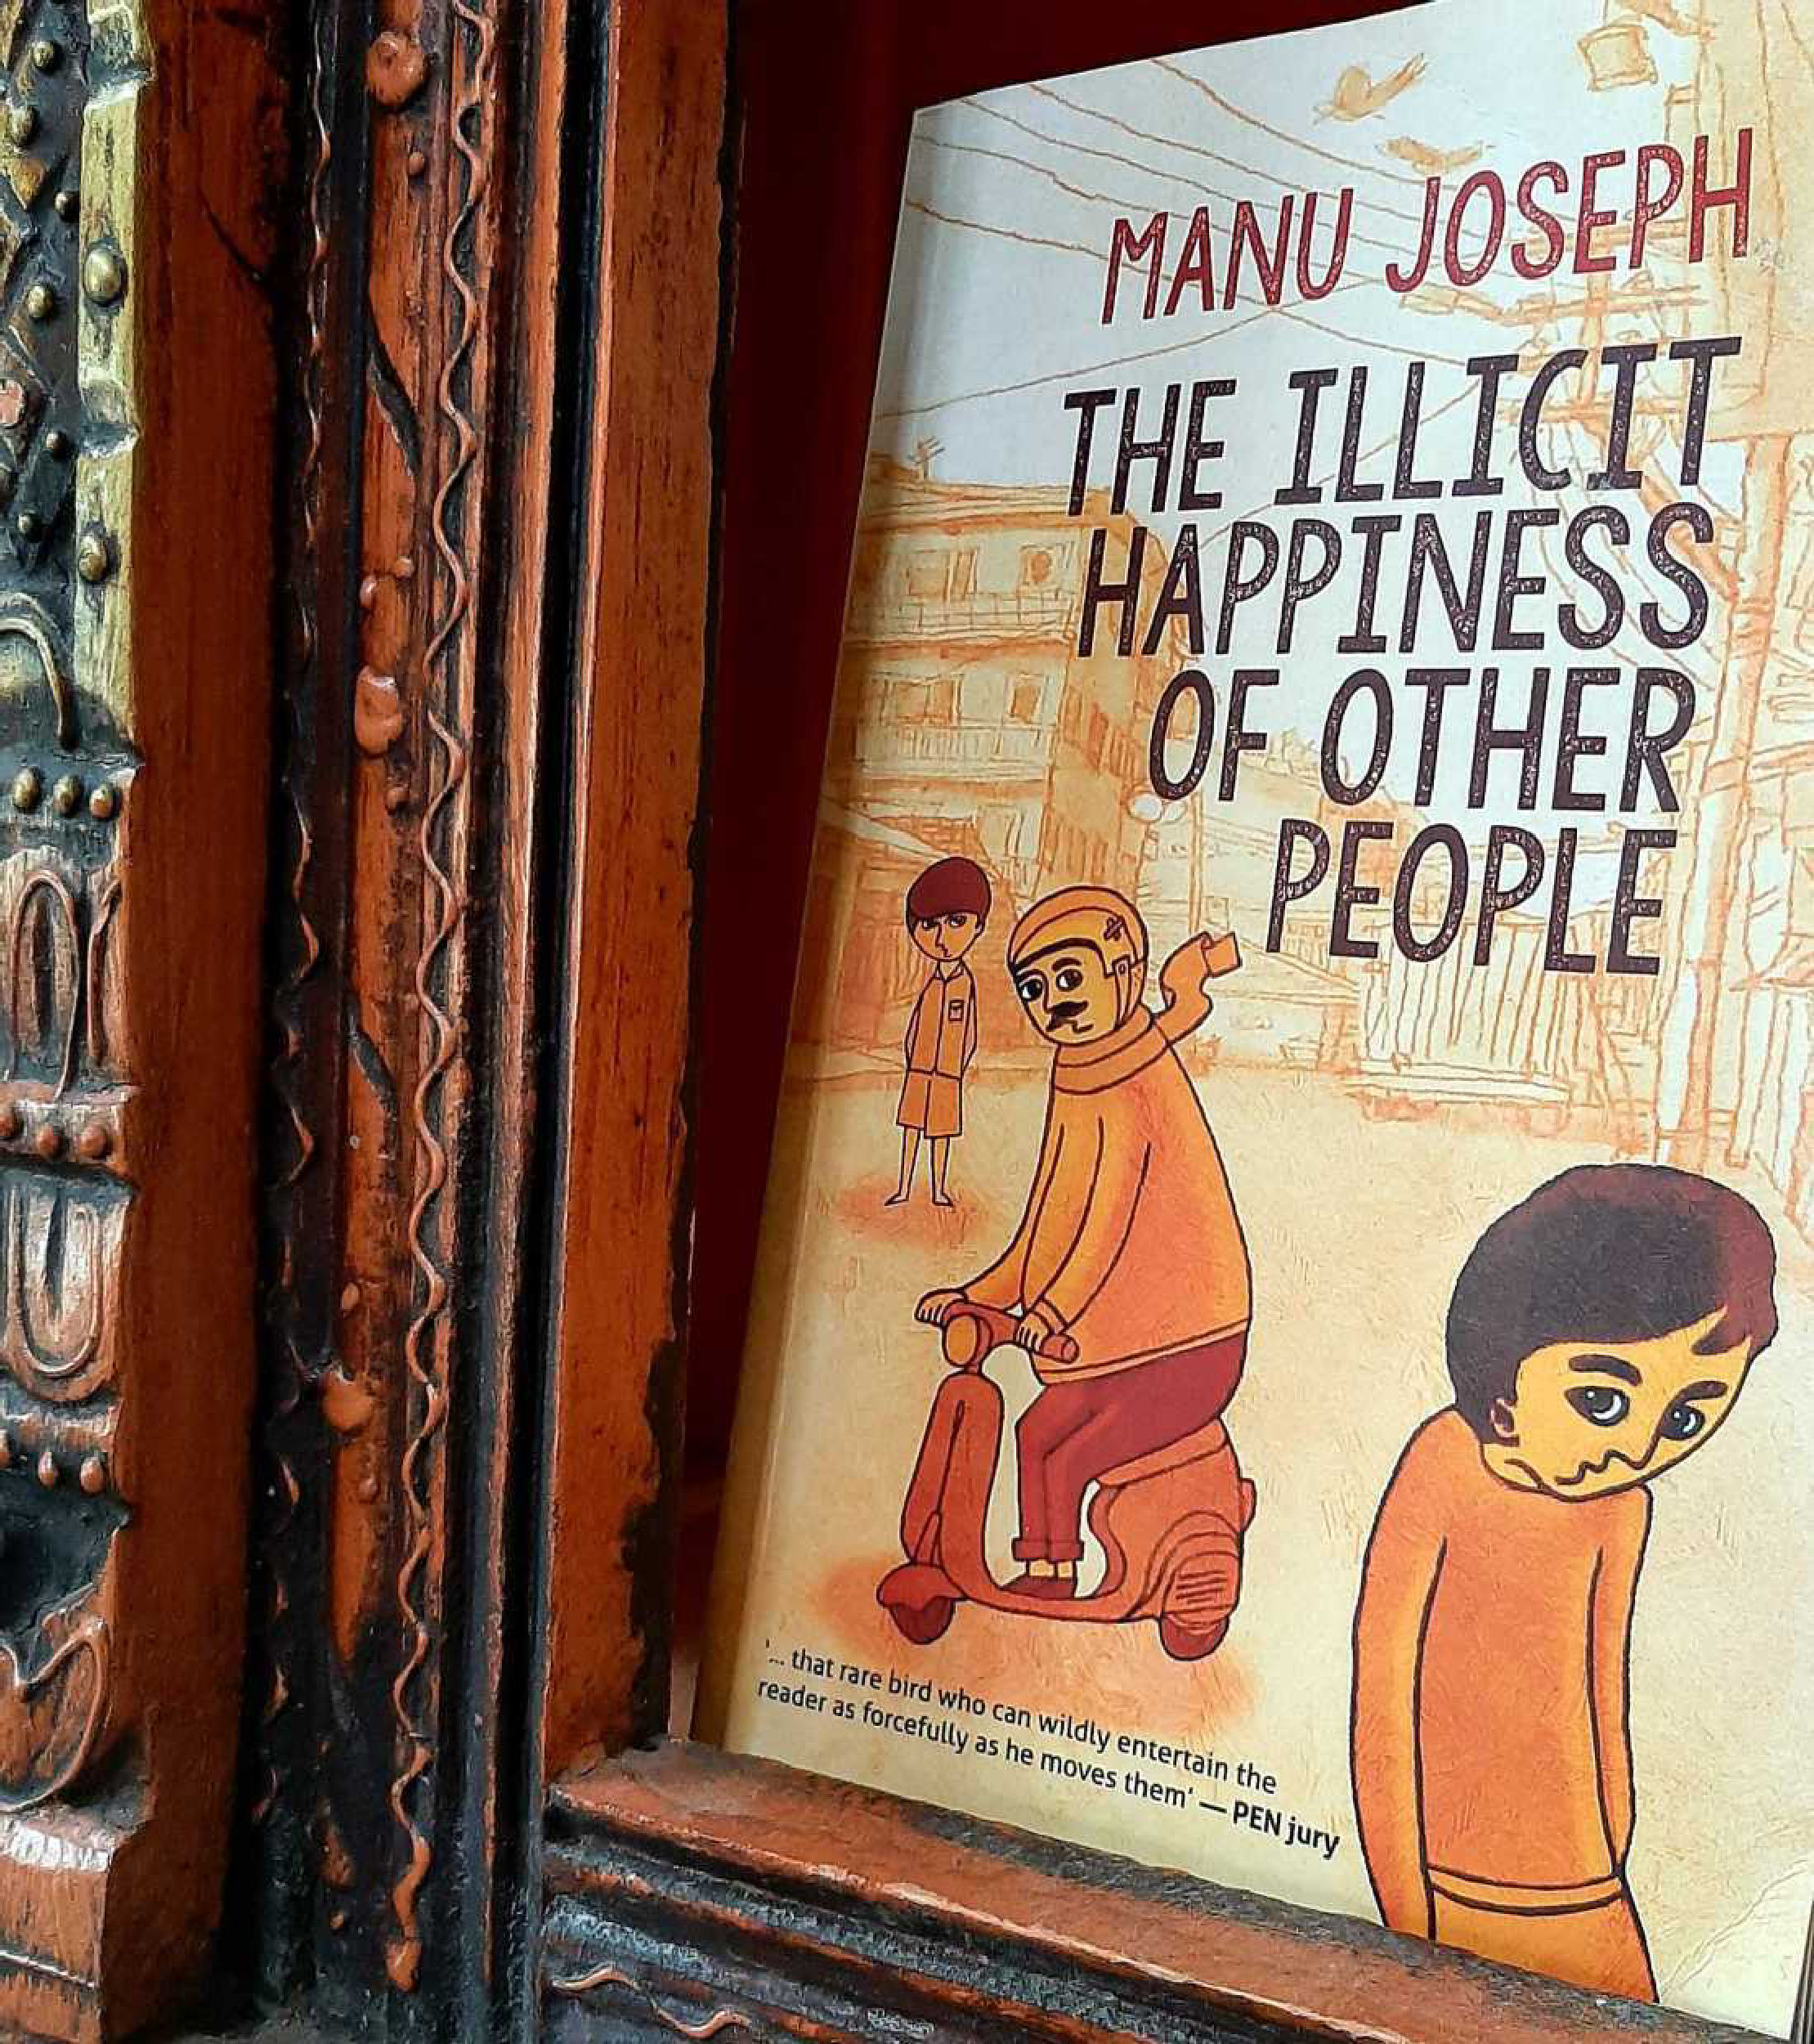 The Illicit Happiness of Other People, Manu Joseph